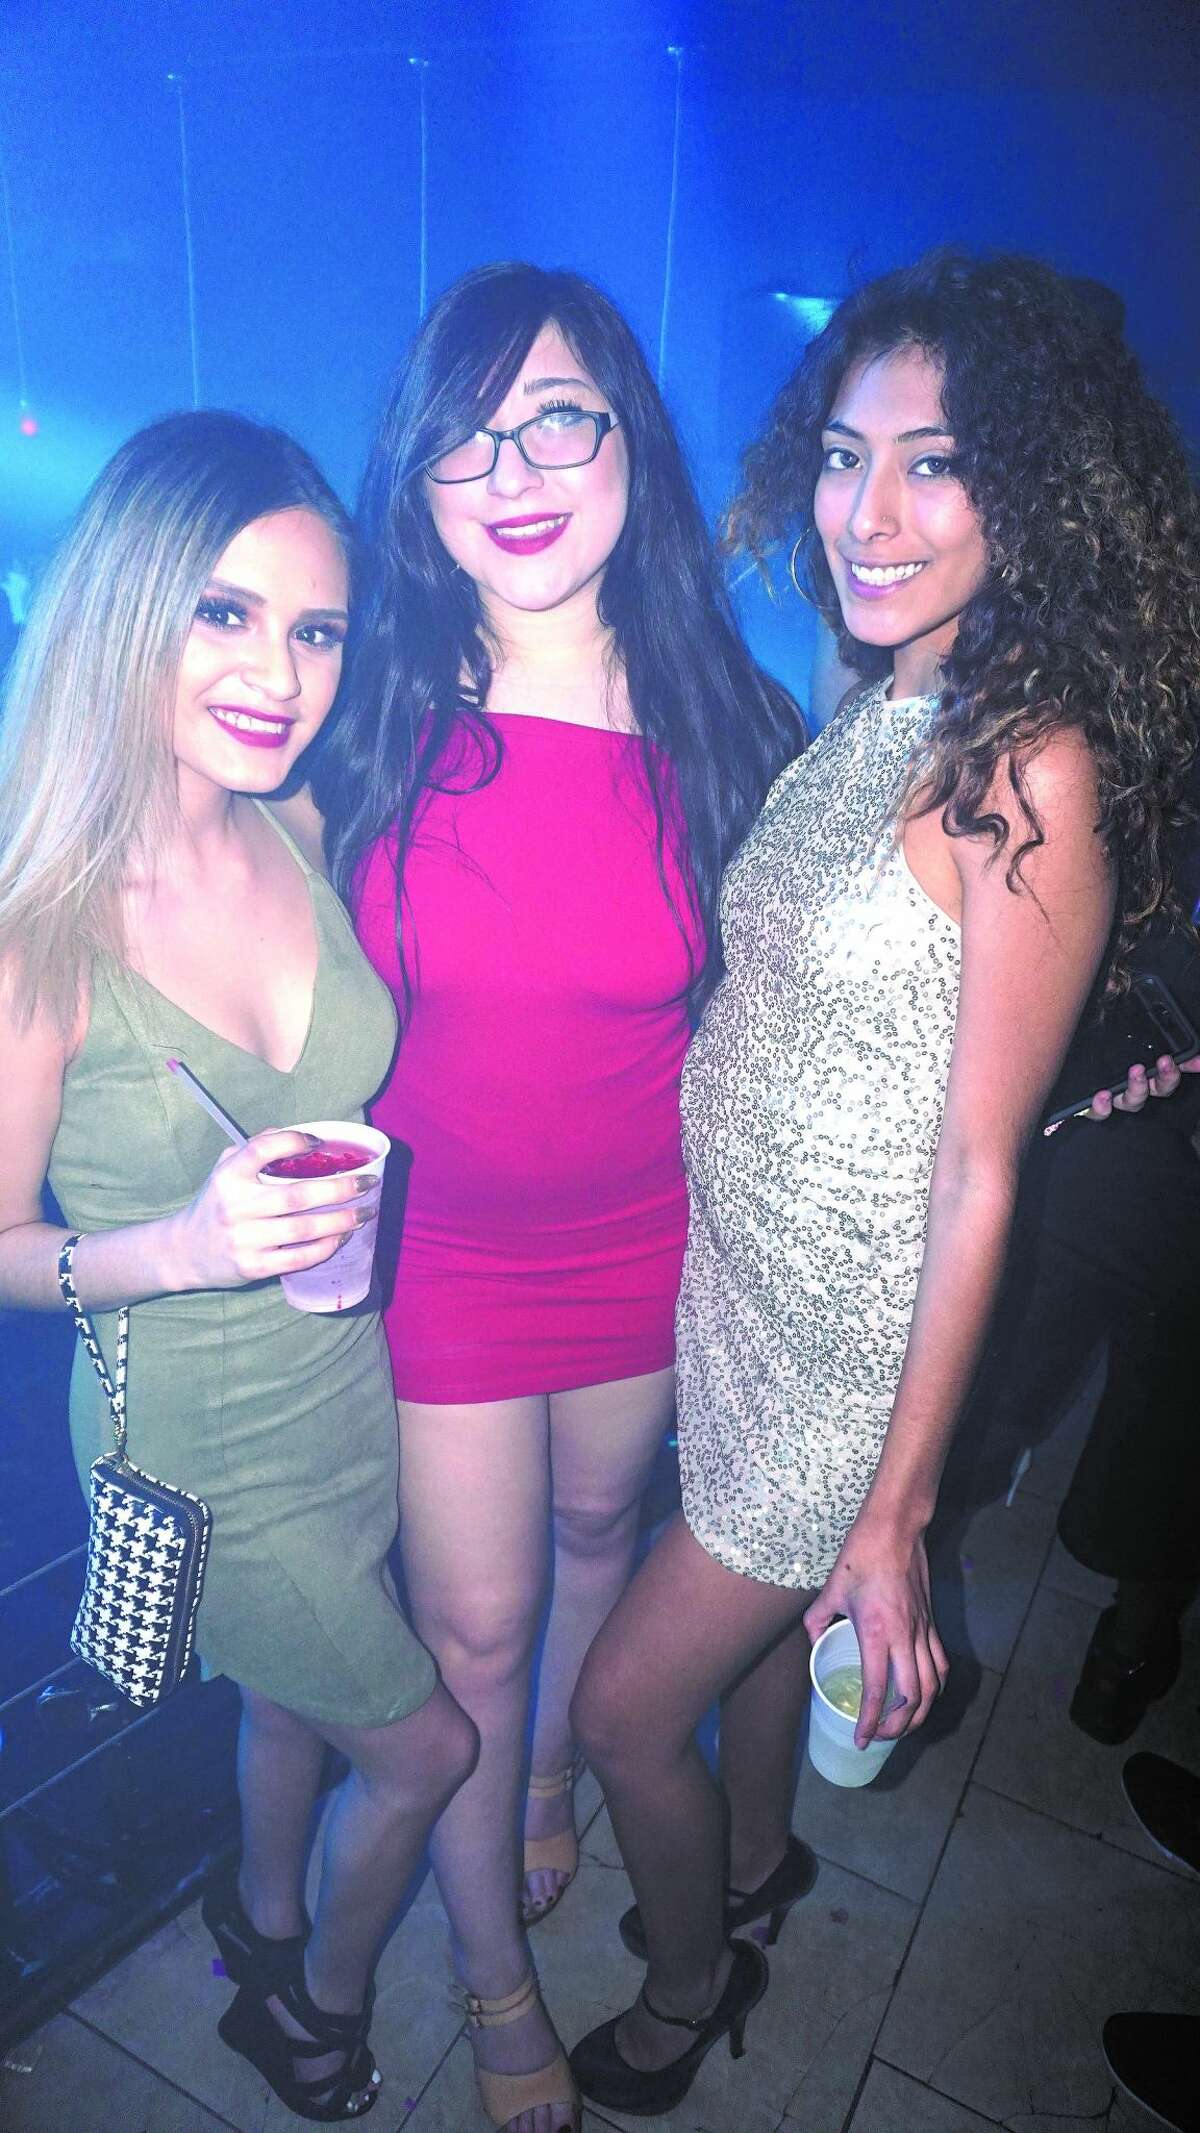 Abigail Chapa, Brittany Nicole Medellin and Elsa Guerra at Club Vibe Friday, March 16, 2018